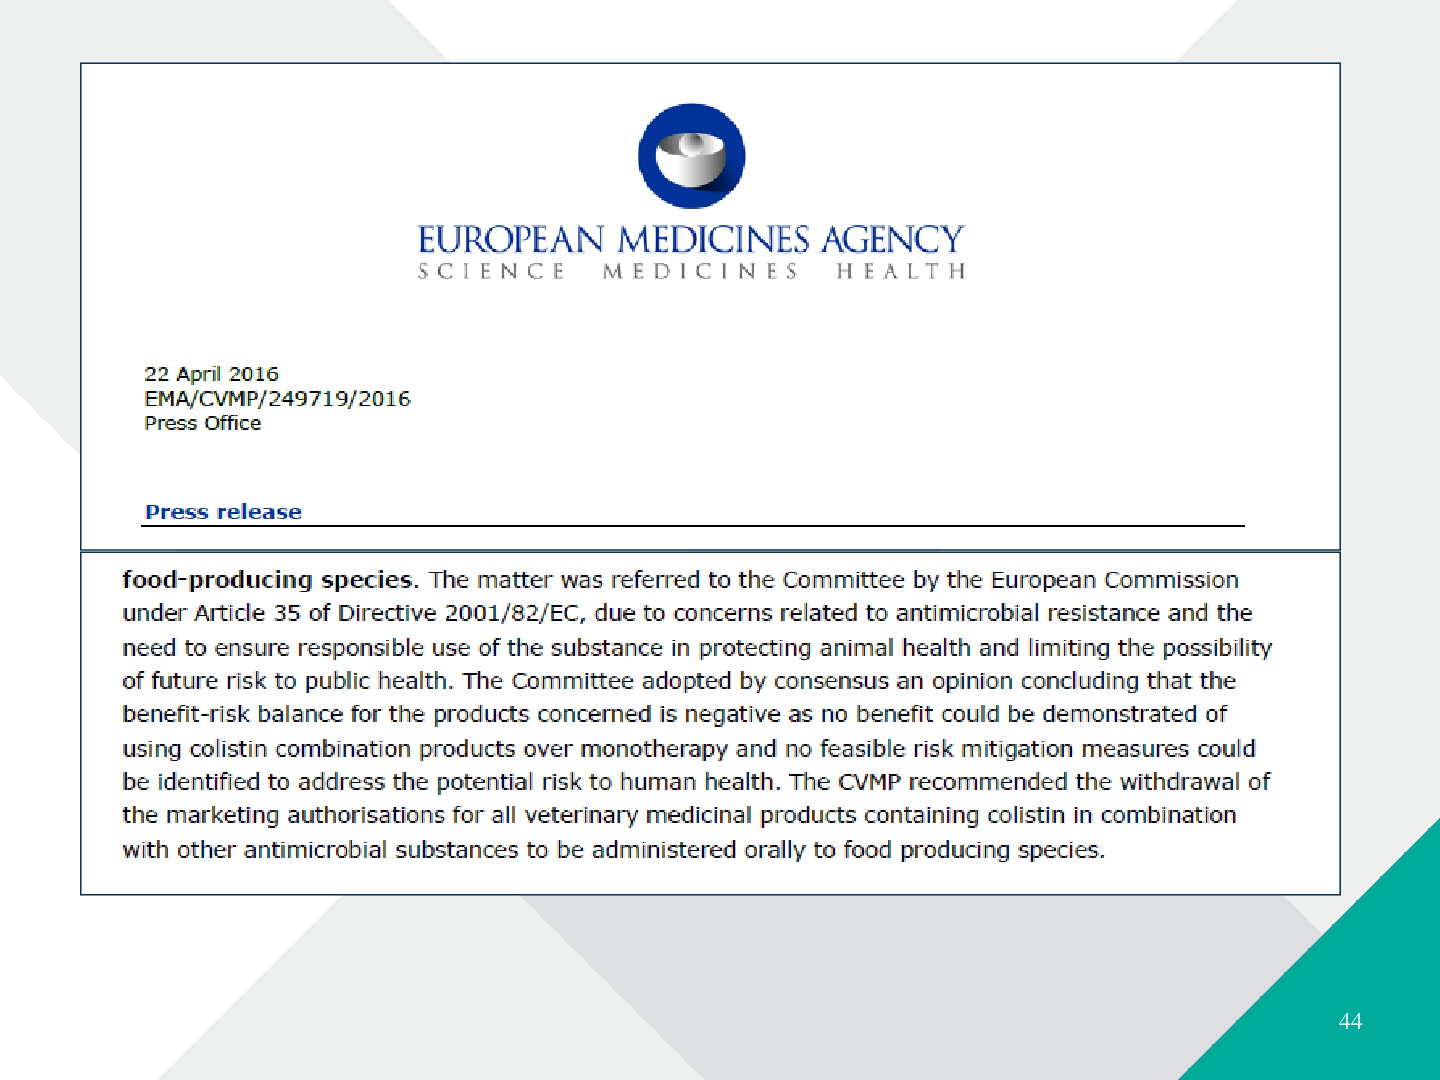 Global-overview-on-antibiotic-use-policy-in-veterinary-medicine-044_1512553395.jpg